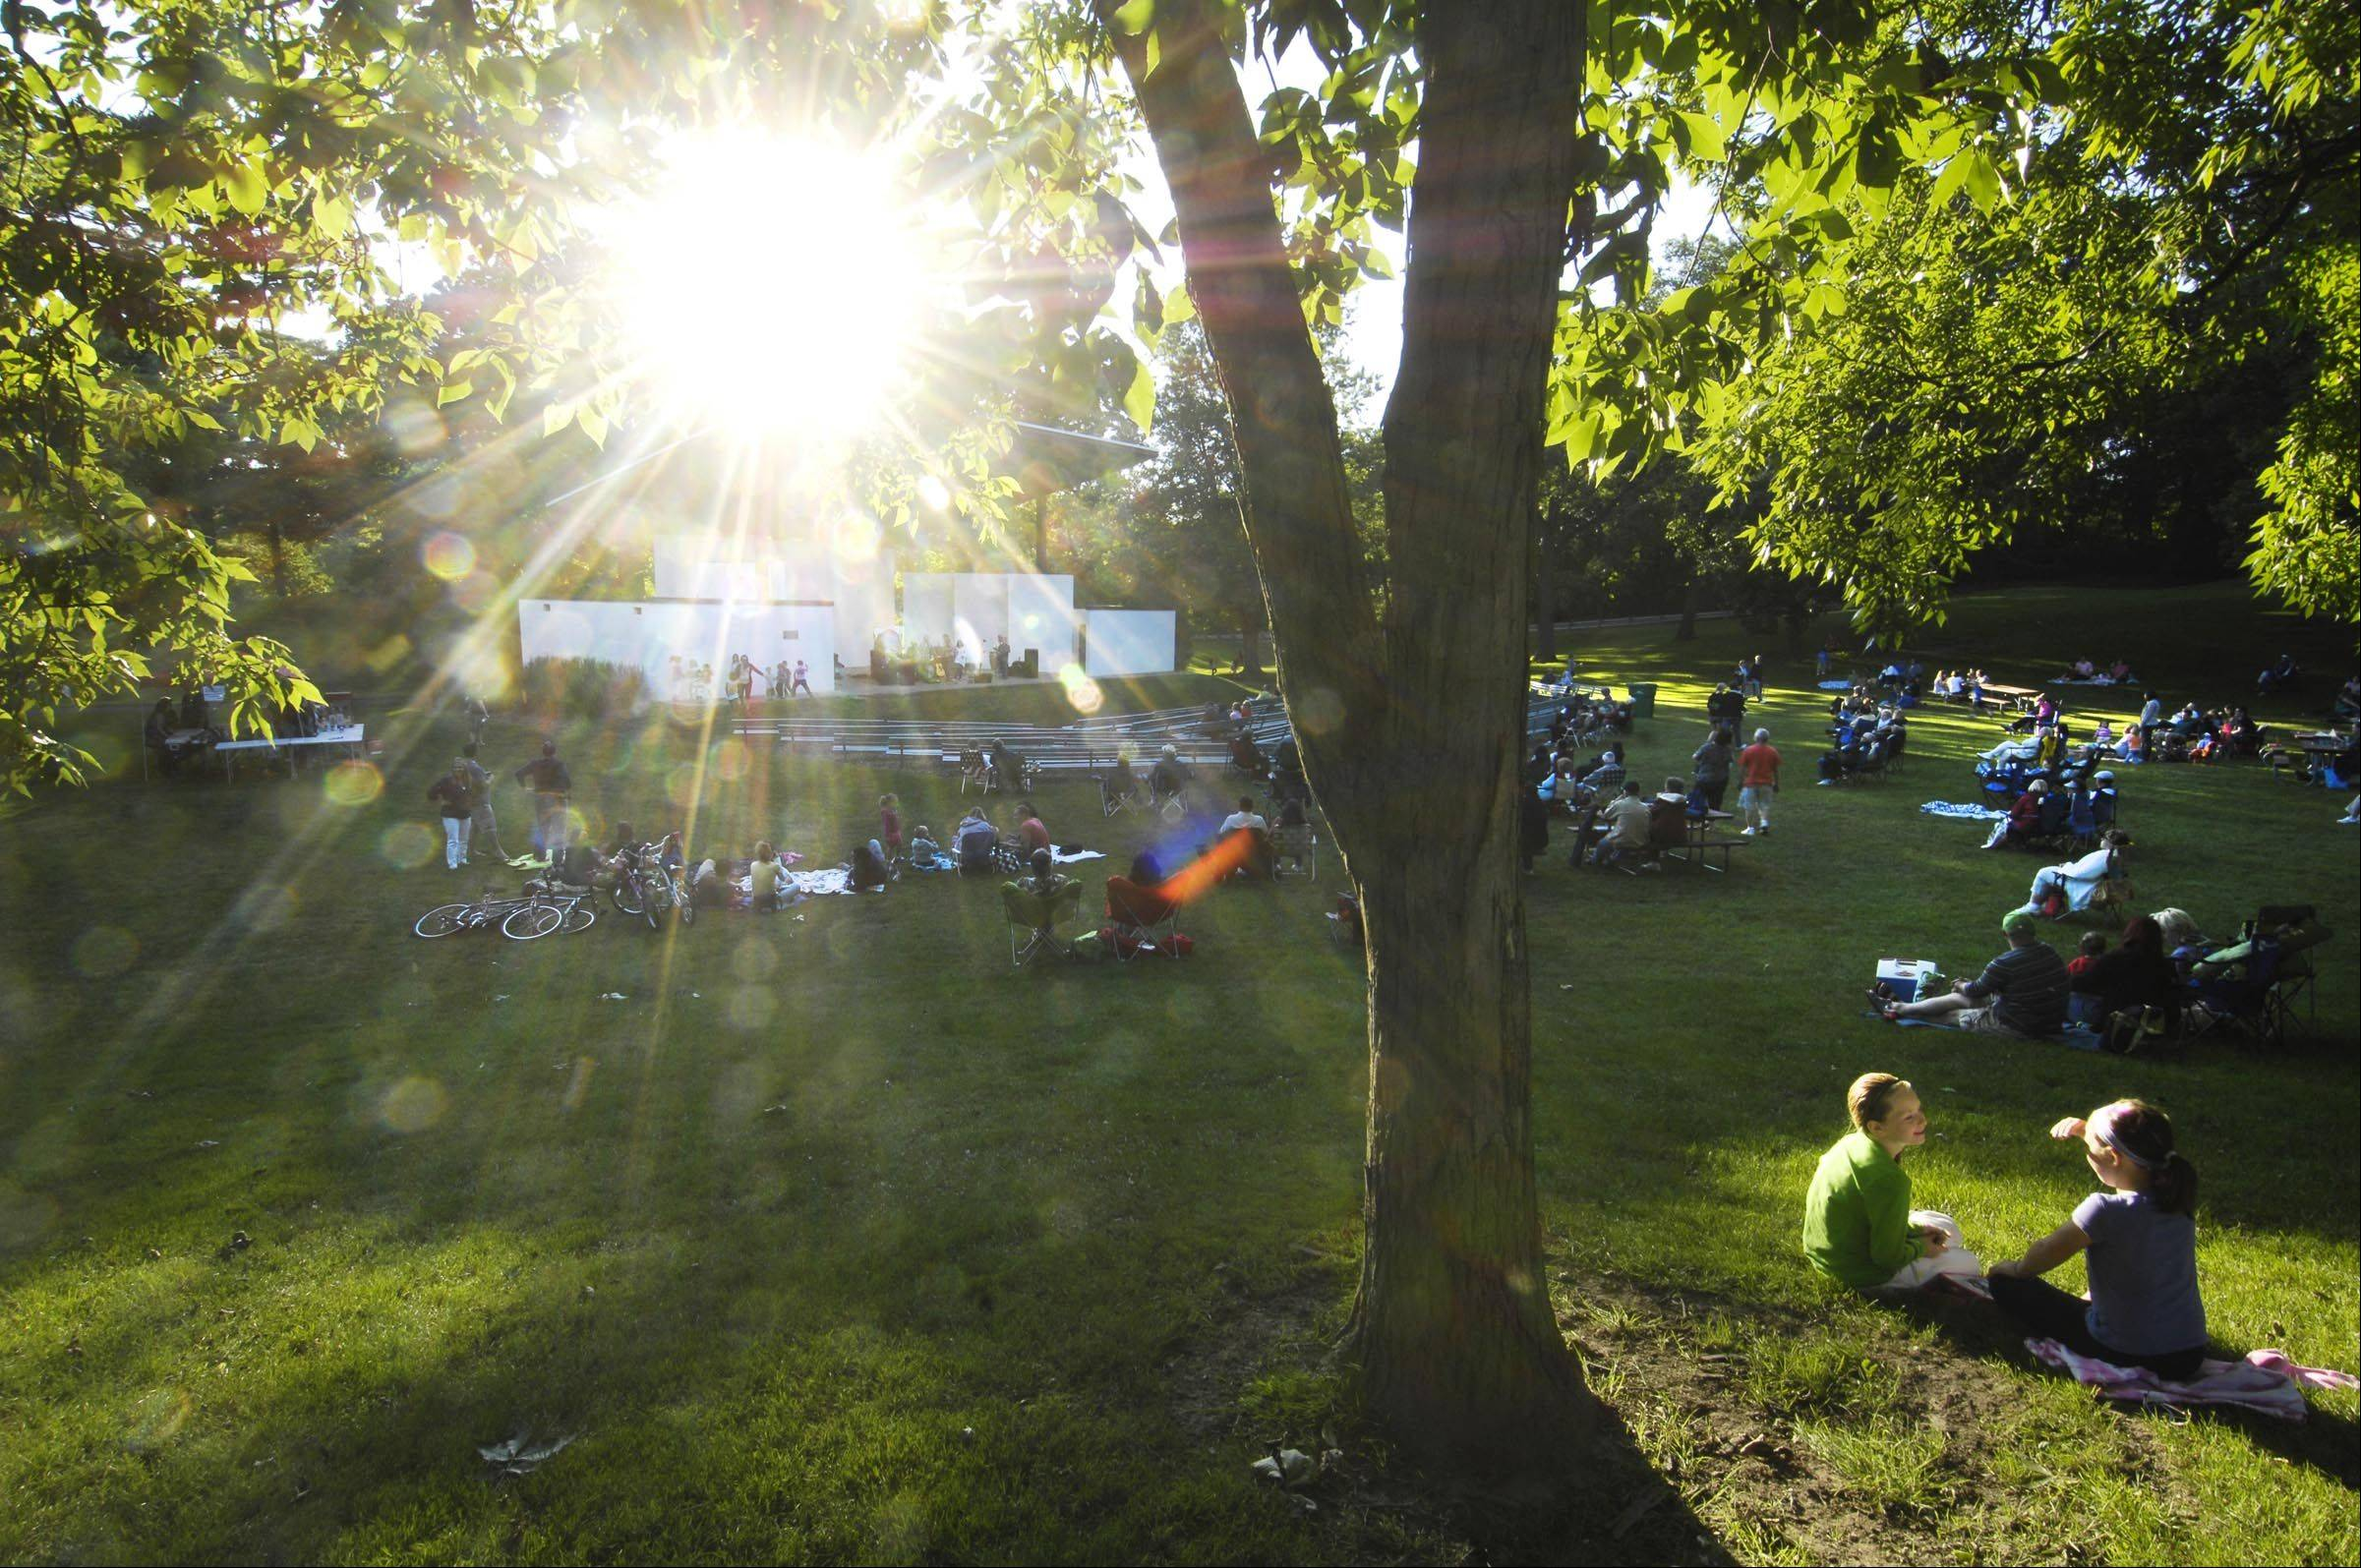 Sun beams through the summer leaves as people relax on the grass and listen to the Saturday June Band in the Wing Park bandshell in Elgin Tuesday evening. It was the opening night of the Summer Concerts in the Park series, that features music every Tuesday. Some members of the Saturday June Band are originally from Elgin.